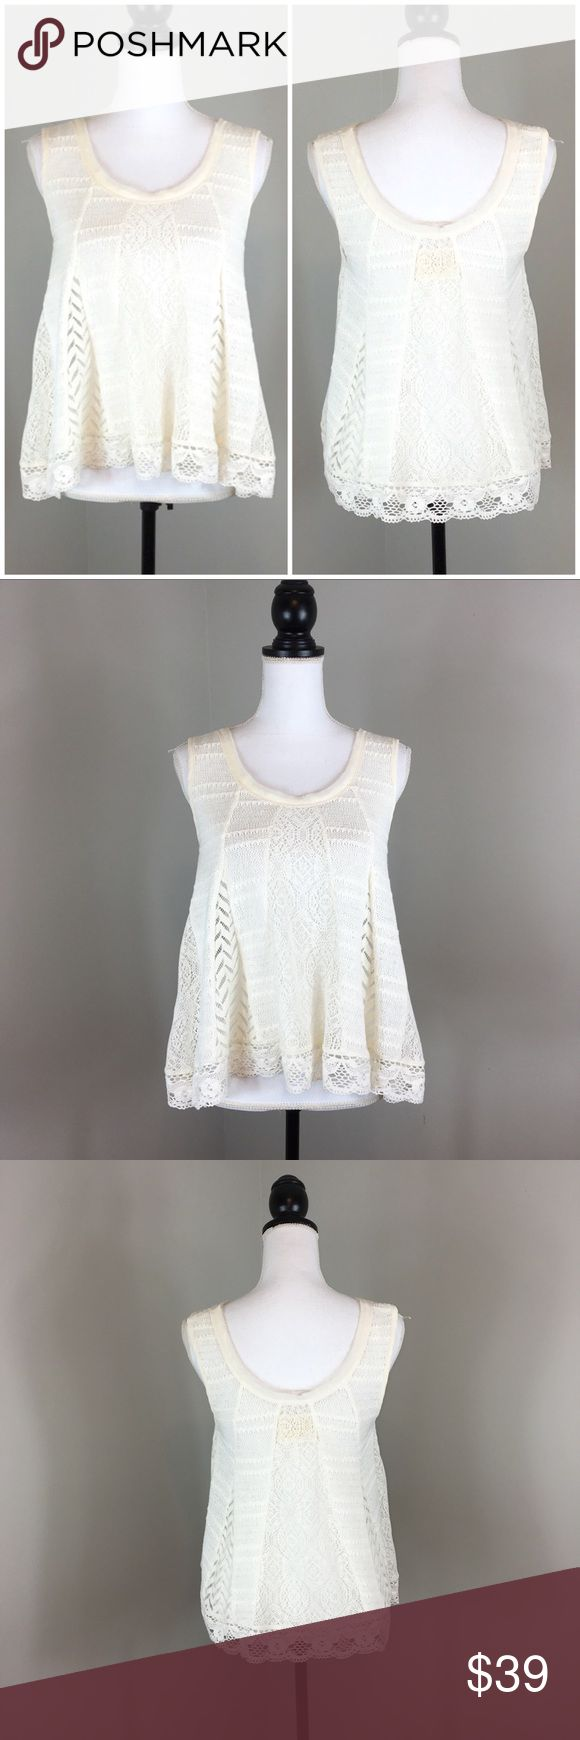 Anthro Meadow Rue Carrigan Mixed Lace Tank Anthropologie Meadow Rue Carrigan Mixed Lace Tank Top. Size medium. Approximate measurements flat laid are 22' long and 16' bust. Good used condition. Stock photos for fit now color. Anthropologie Tops Tank Tops